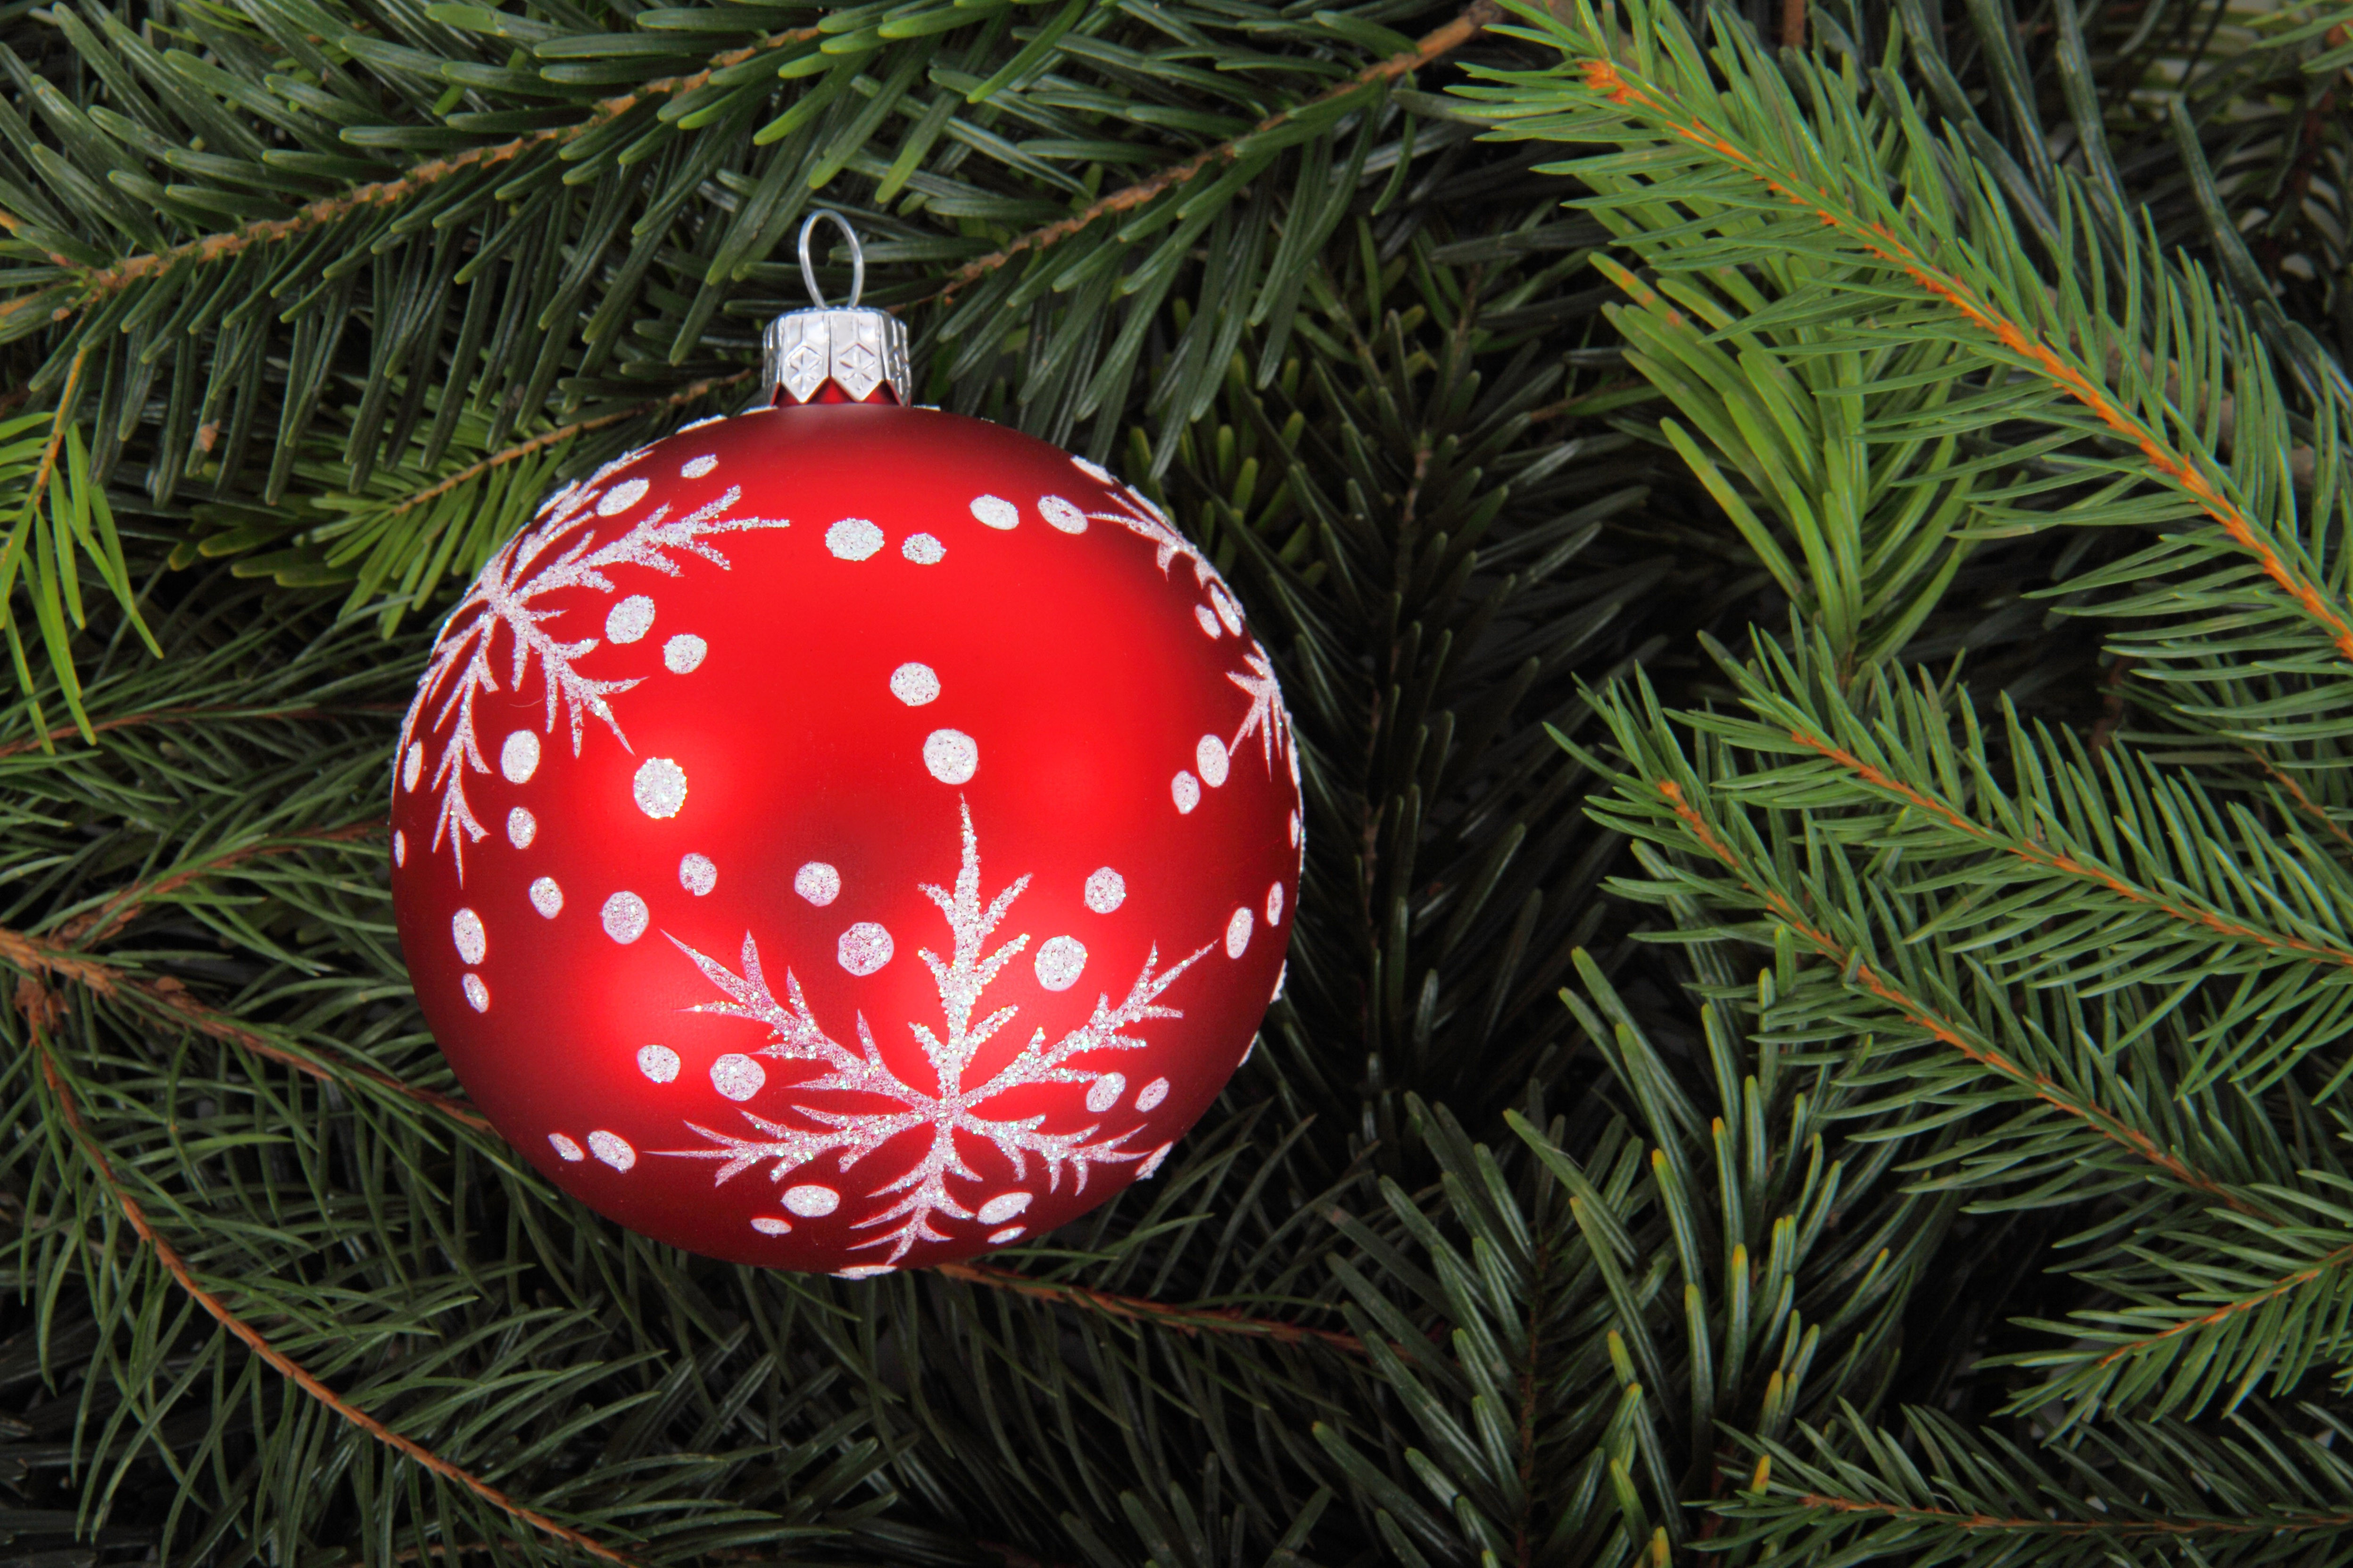 Inspirational 20 Great Ball or Bauble themed Free Christmas Wallpaper or Christmas Tree Balls Of Wonderful 50 Pictures Christmas Tree Balls